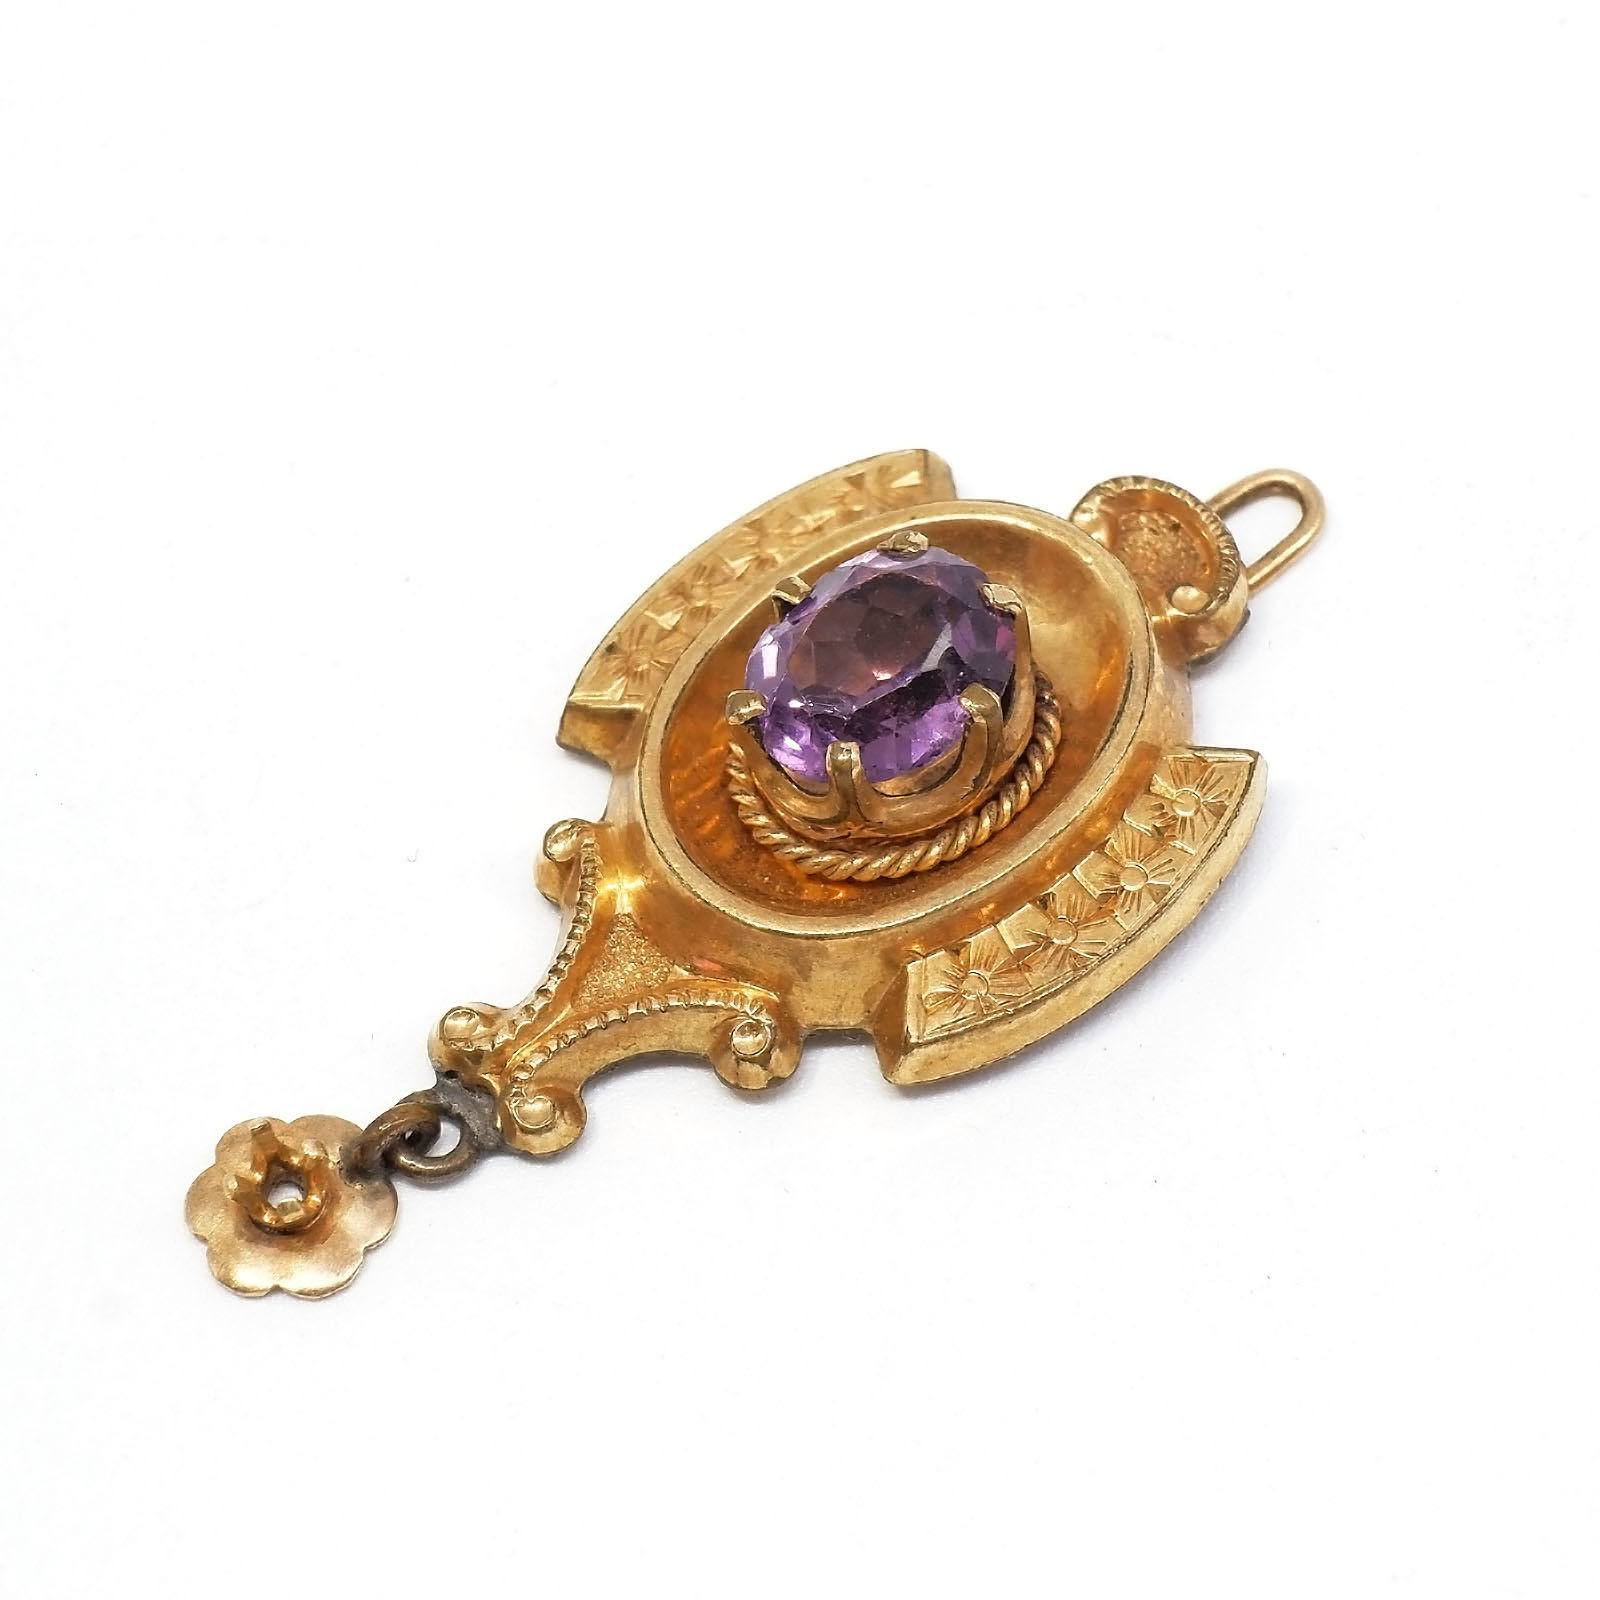 'Antique Rolled Golf Shield Shaped Pendant with Oval Amethyst Centre'